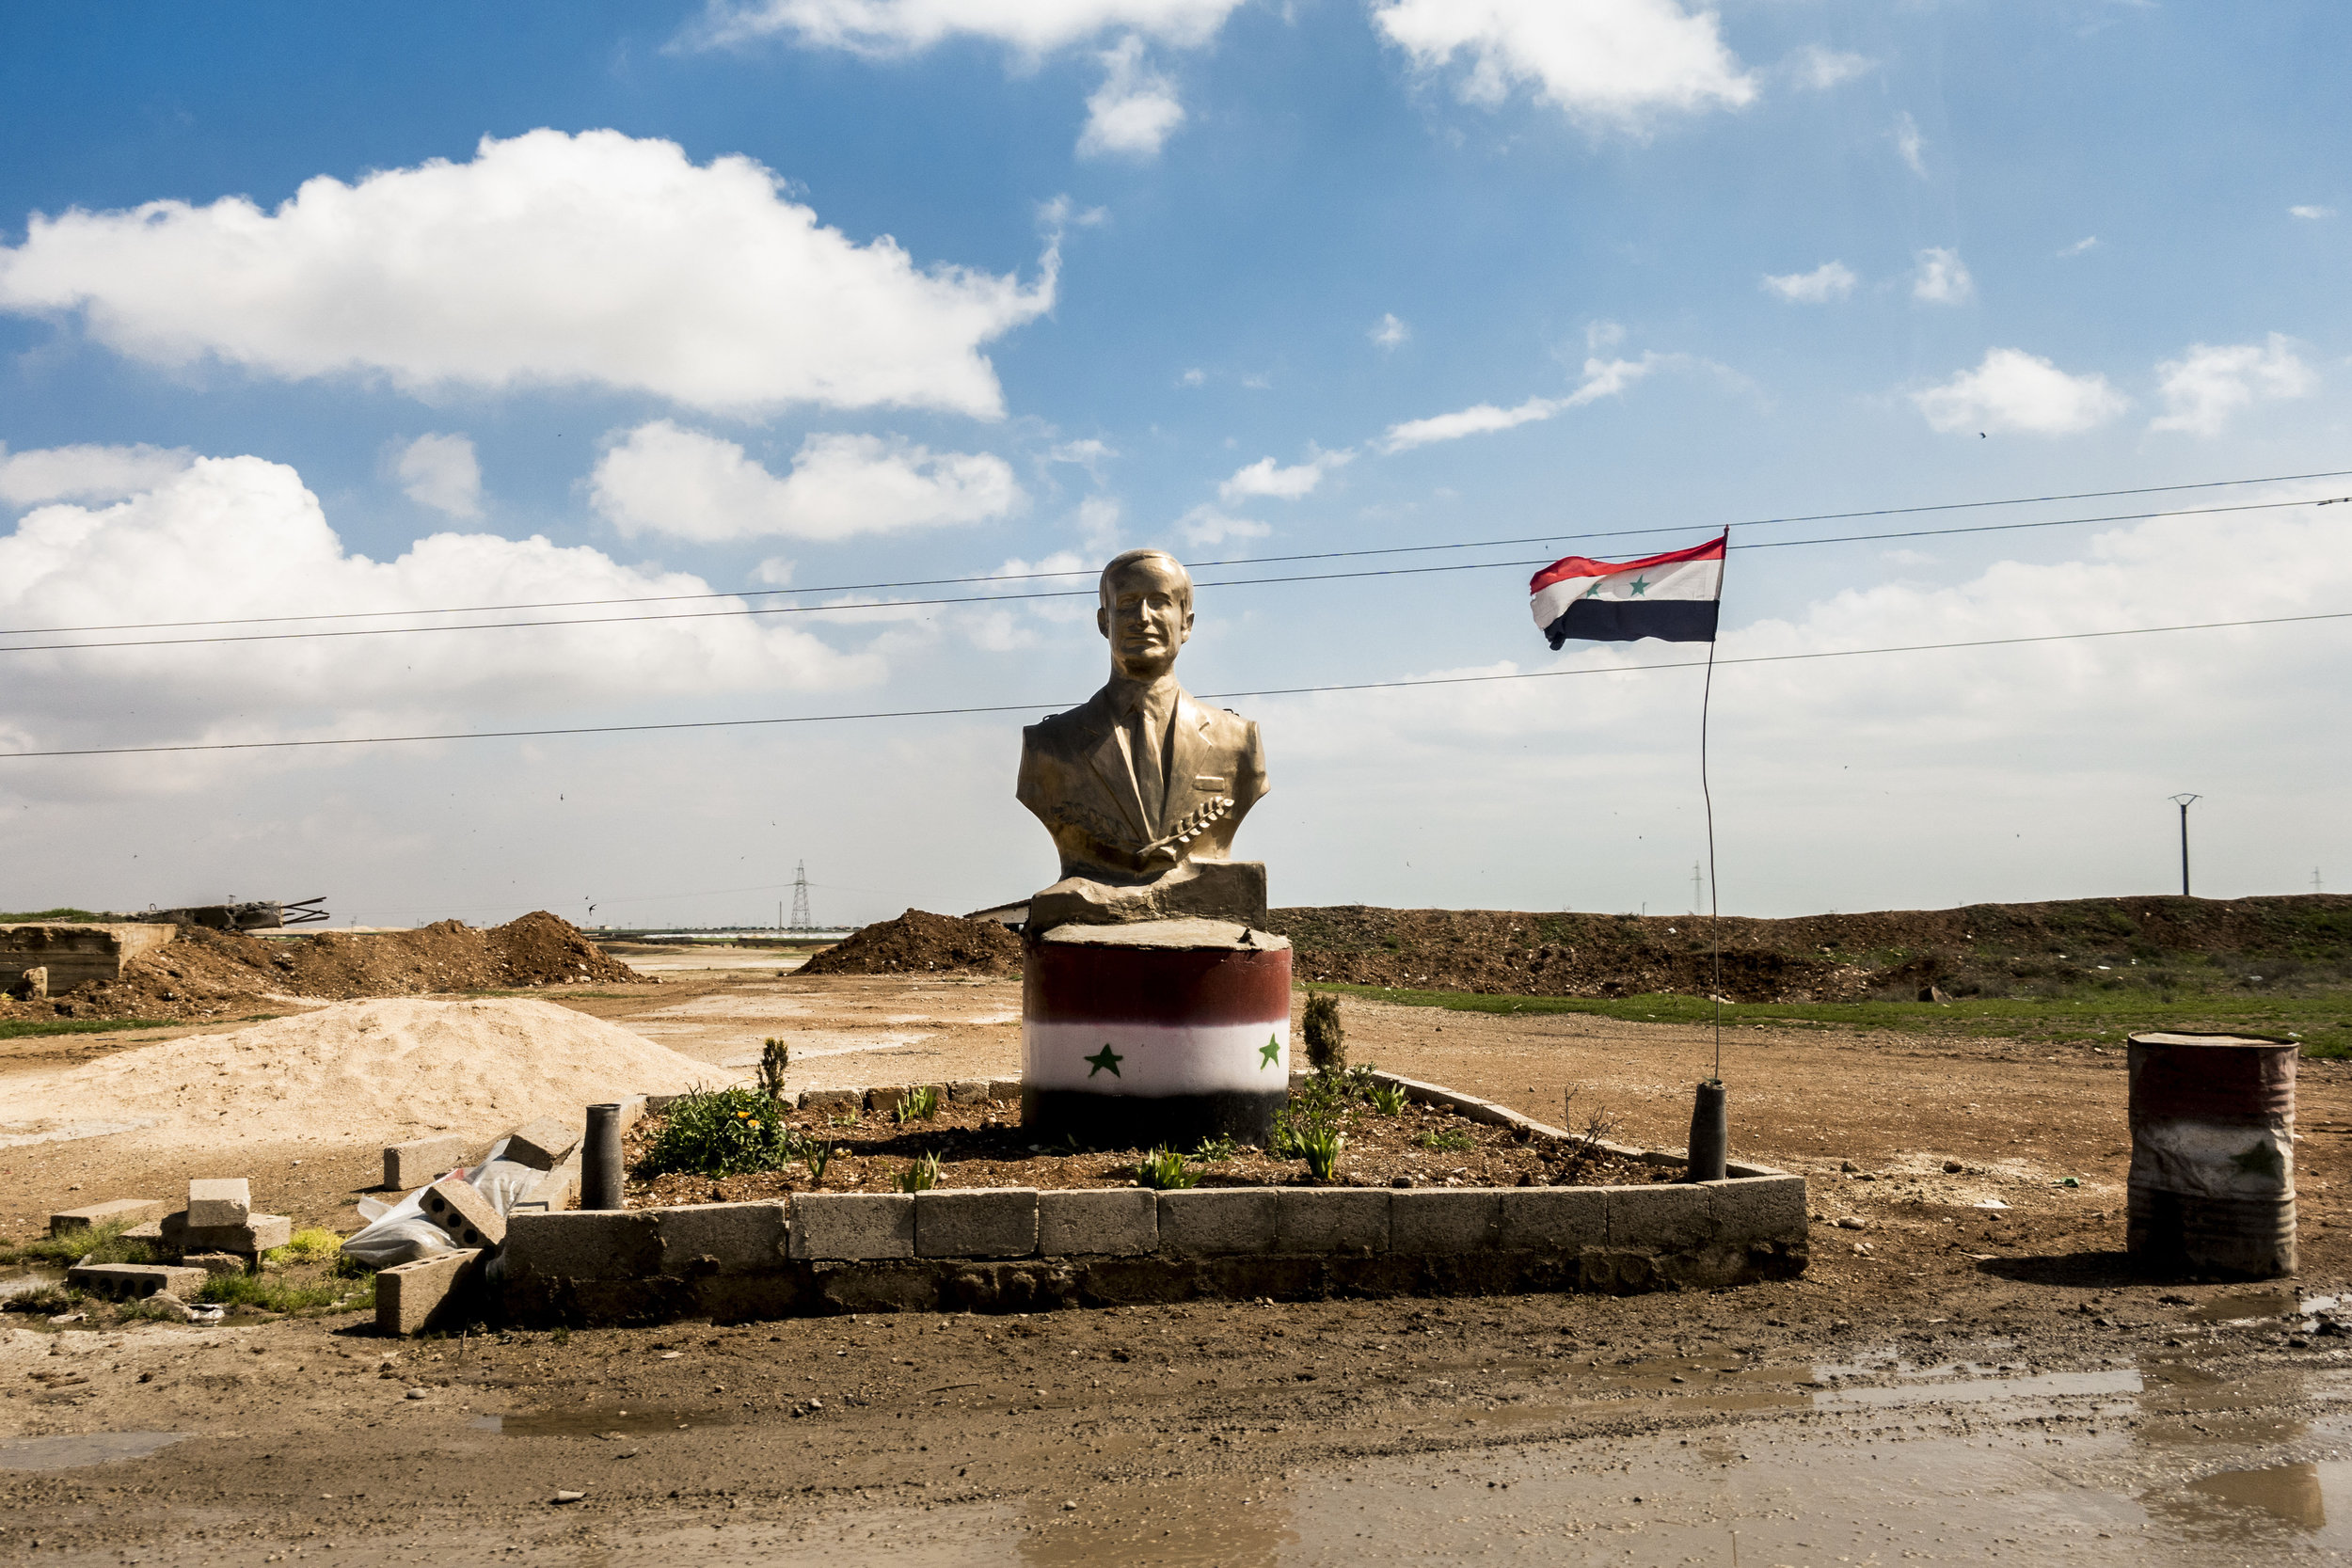 Syria, Aleppo, 18 March 2017  Statue of Hafez al-�sad, father of the President Bashar al Assad, in the only road secured by the government from Aleppo to Damascus.  Sebastian Liste / NOOR